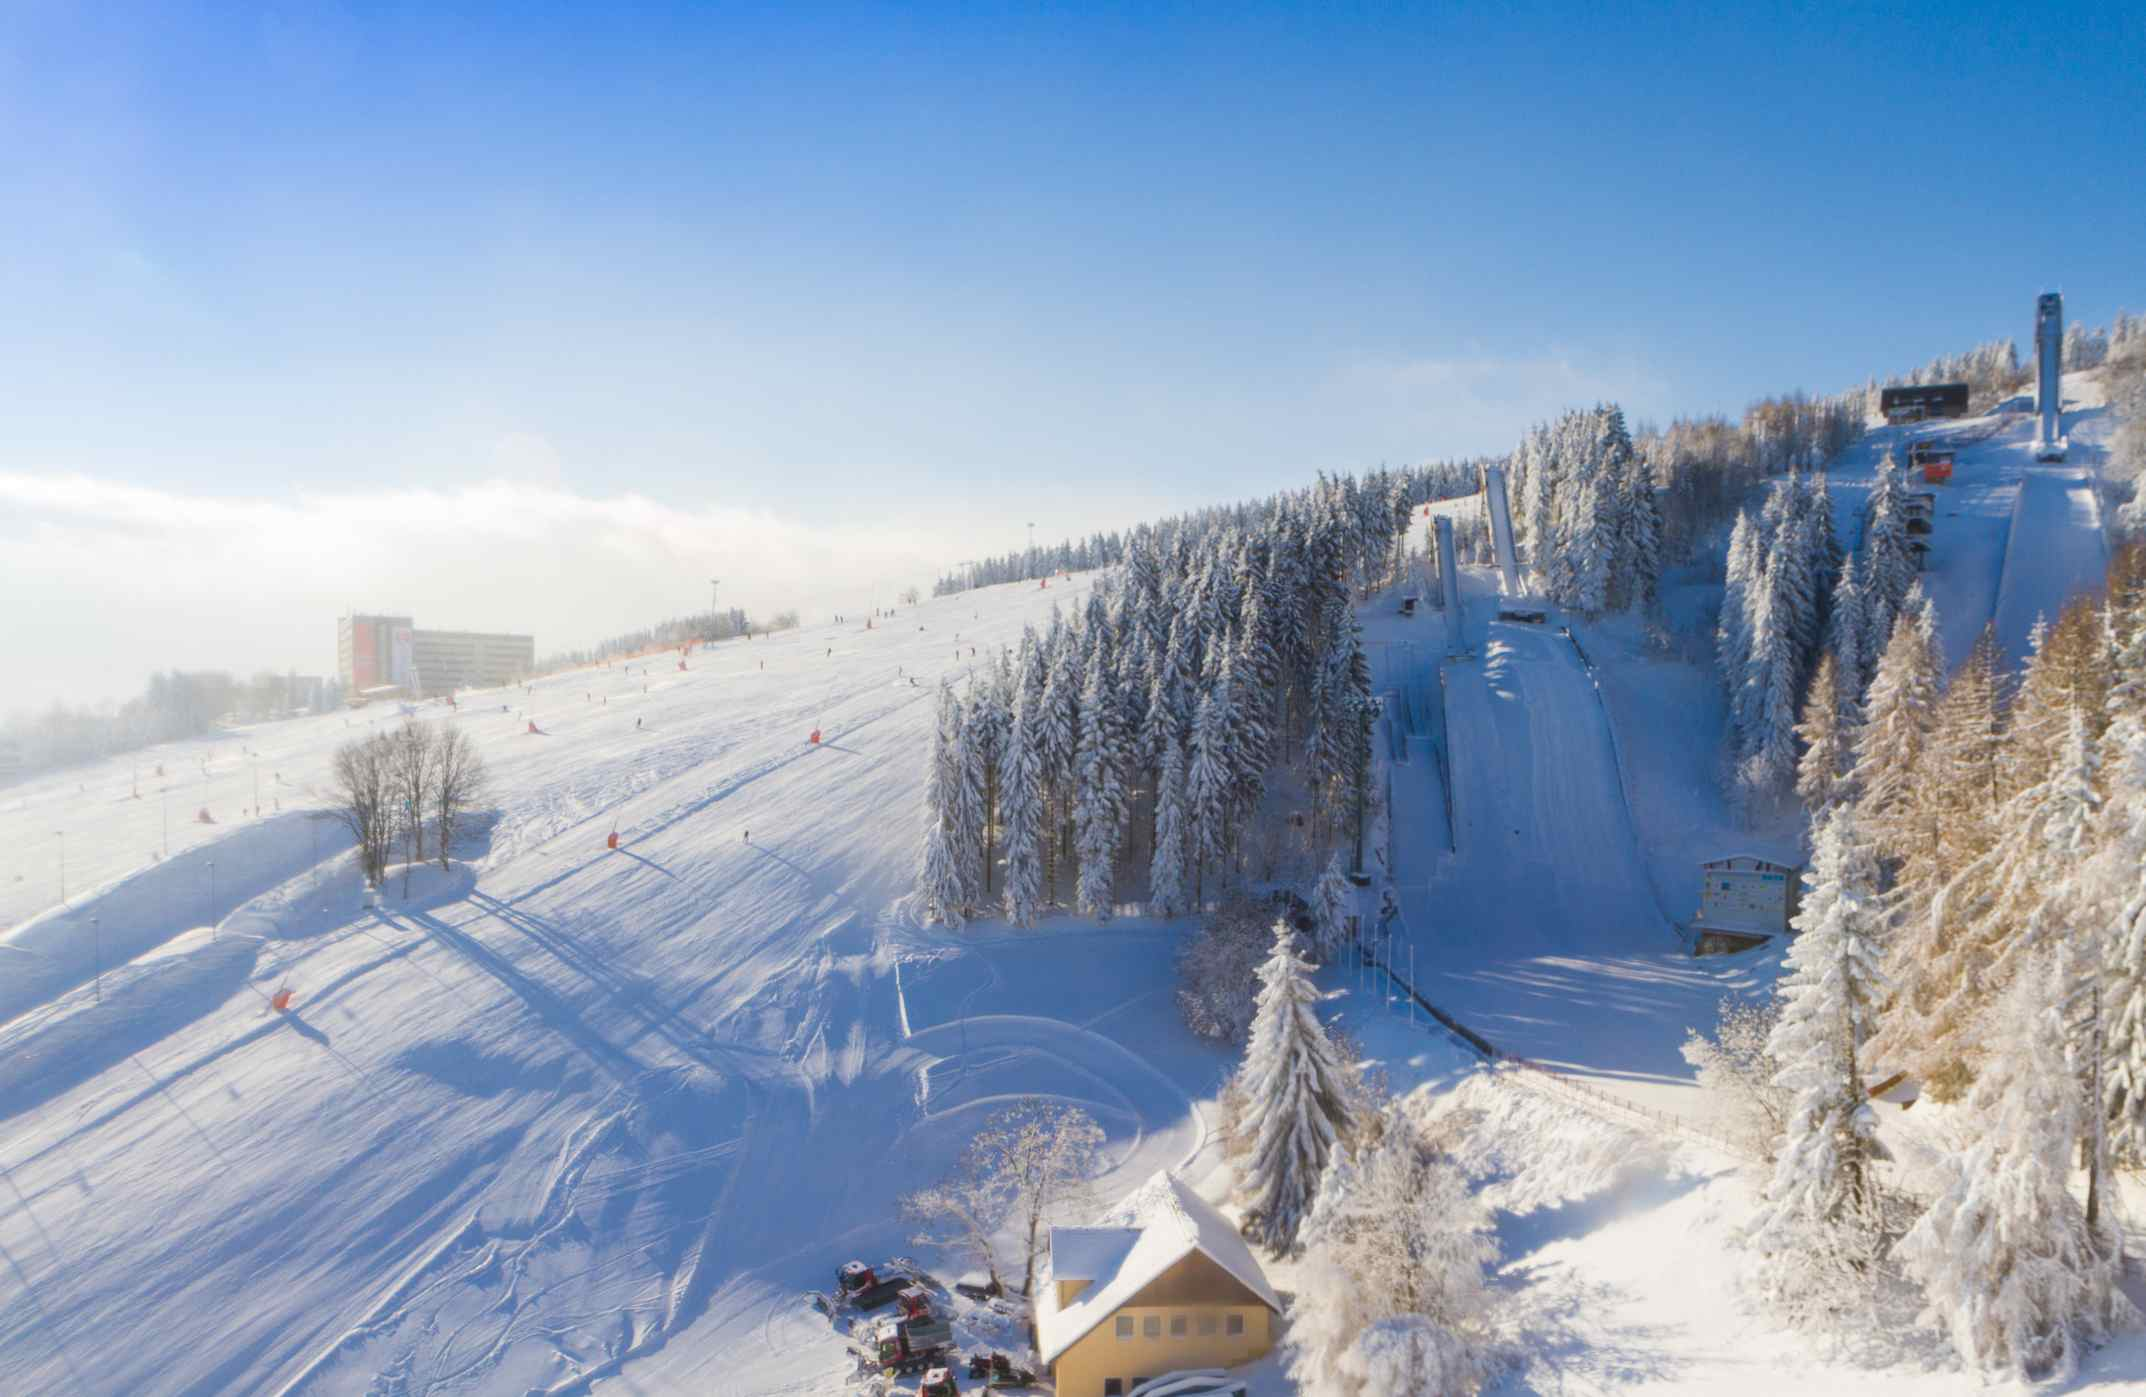 Oberwiesenthal in the Ore Mountains